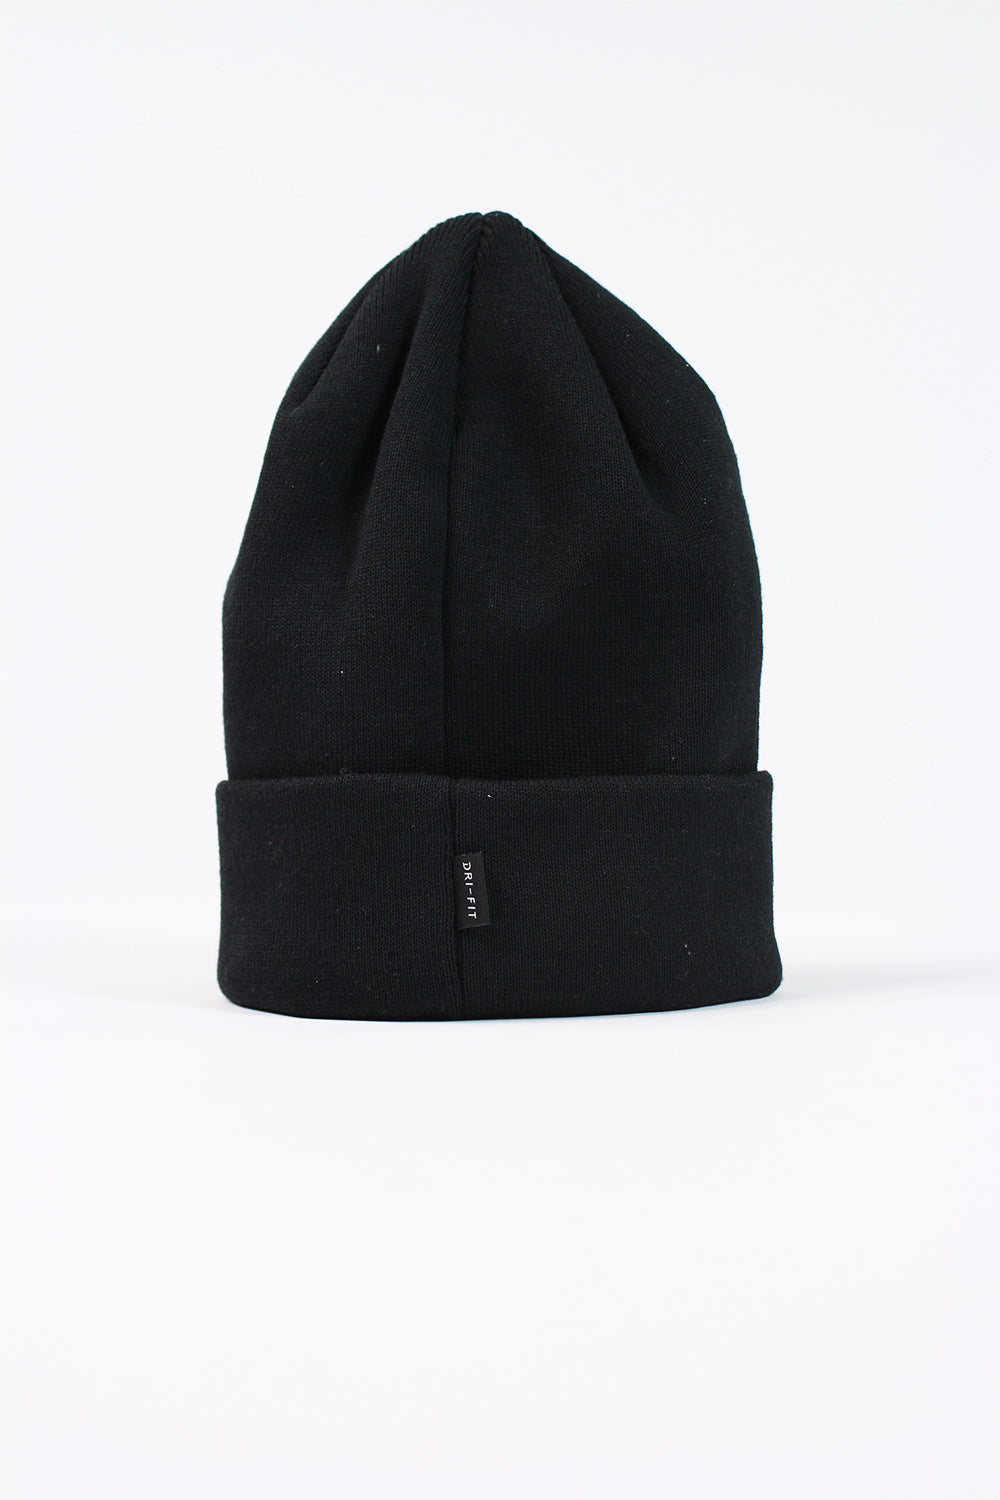 Air Jordan - Jordan Cuffed Beanie (Black) AA1297-010